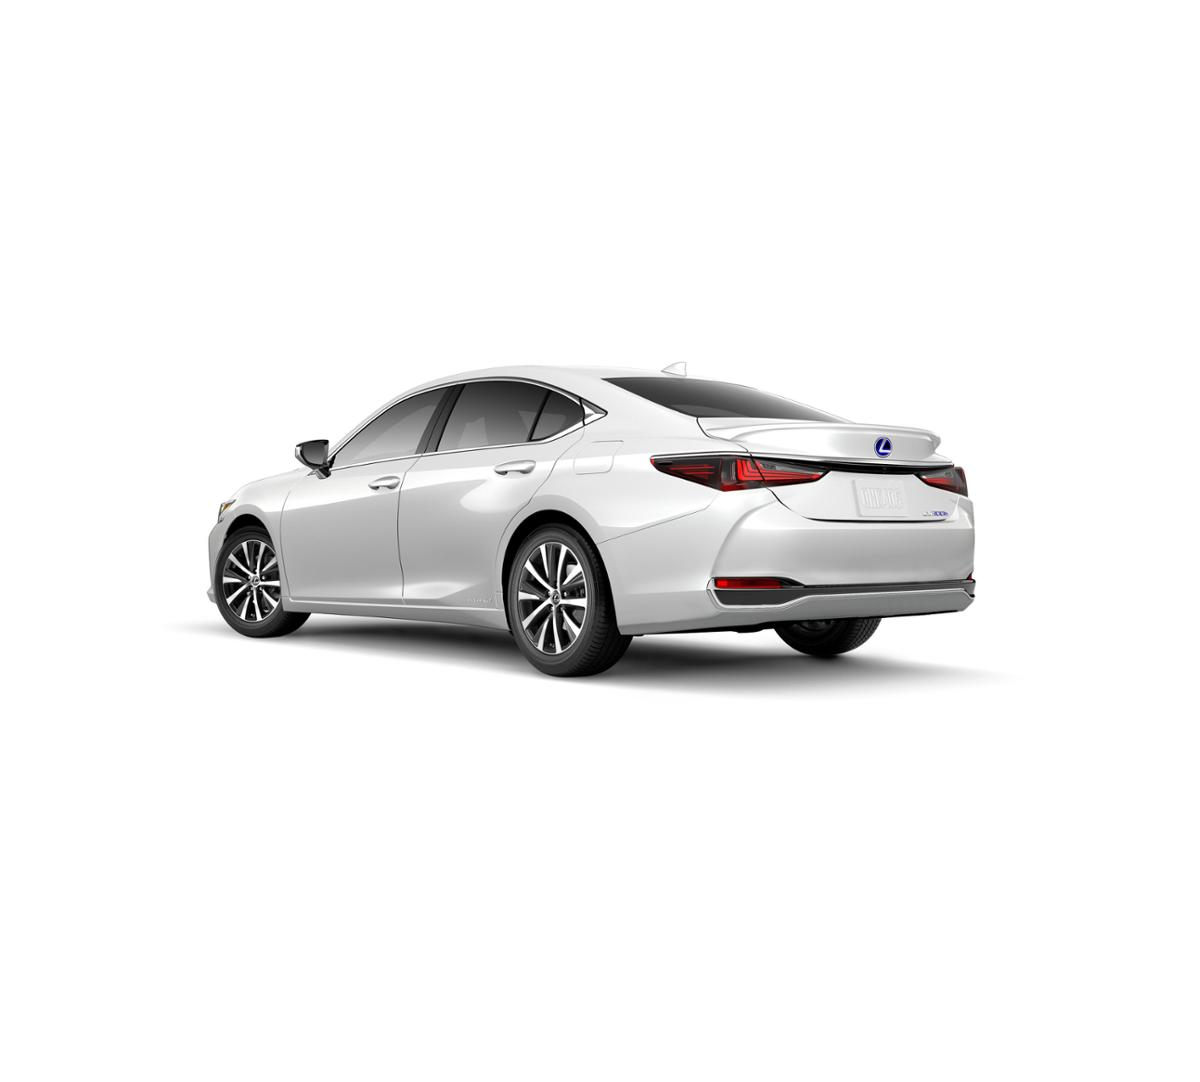 New 2019 Lexus ES 300h For Sale In Farmingdale, NY